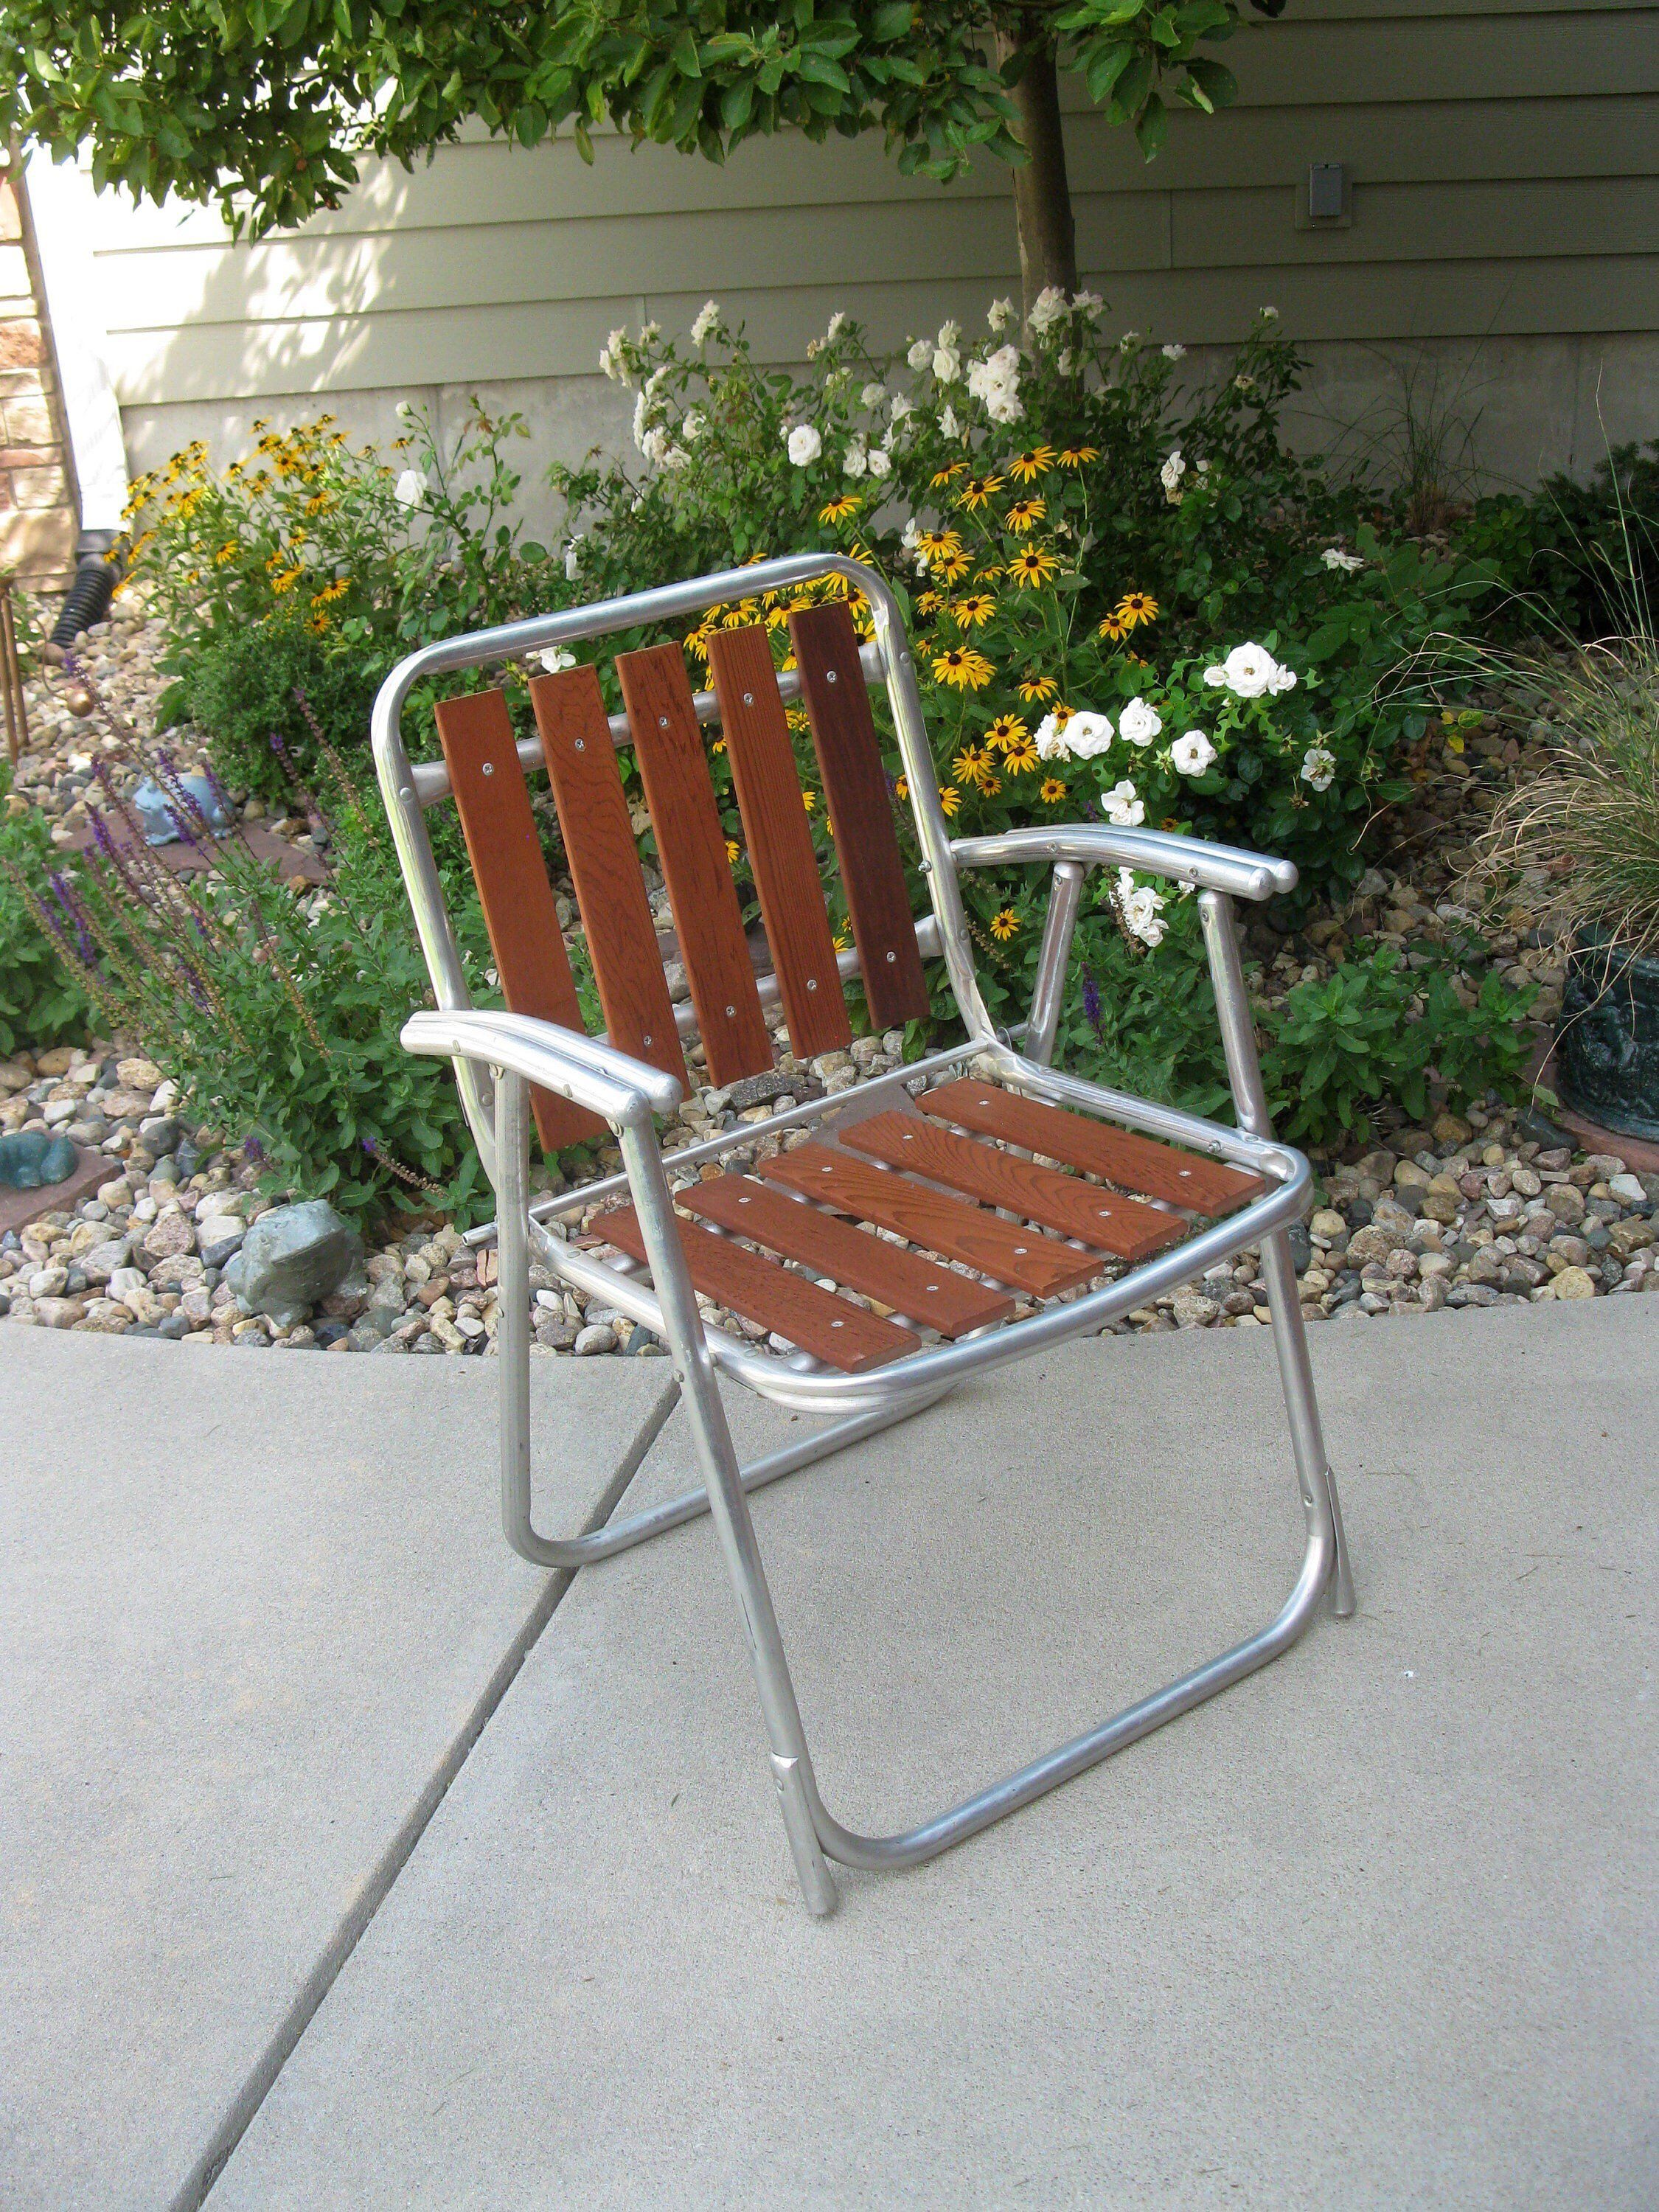 Download Wallpaper Vintage Outdoor Metal Folding Chairs